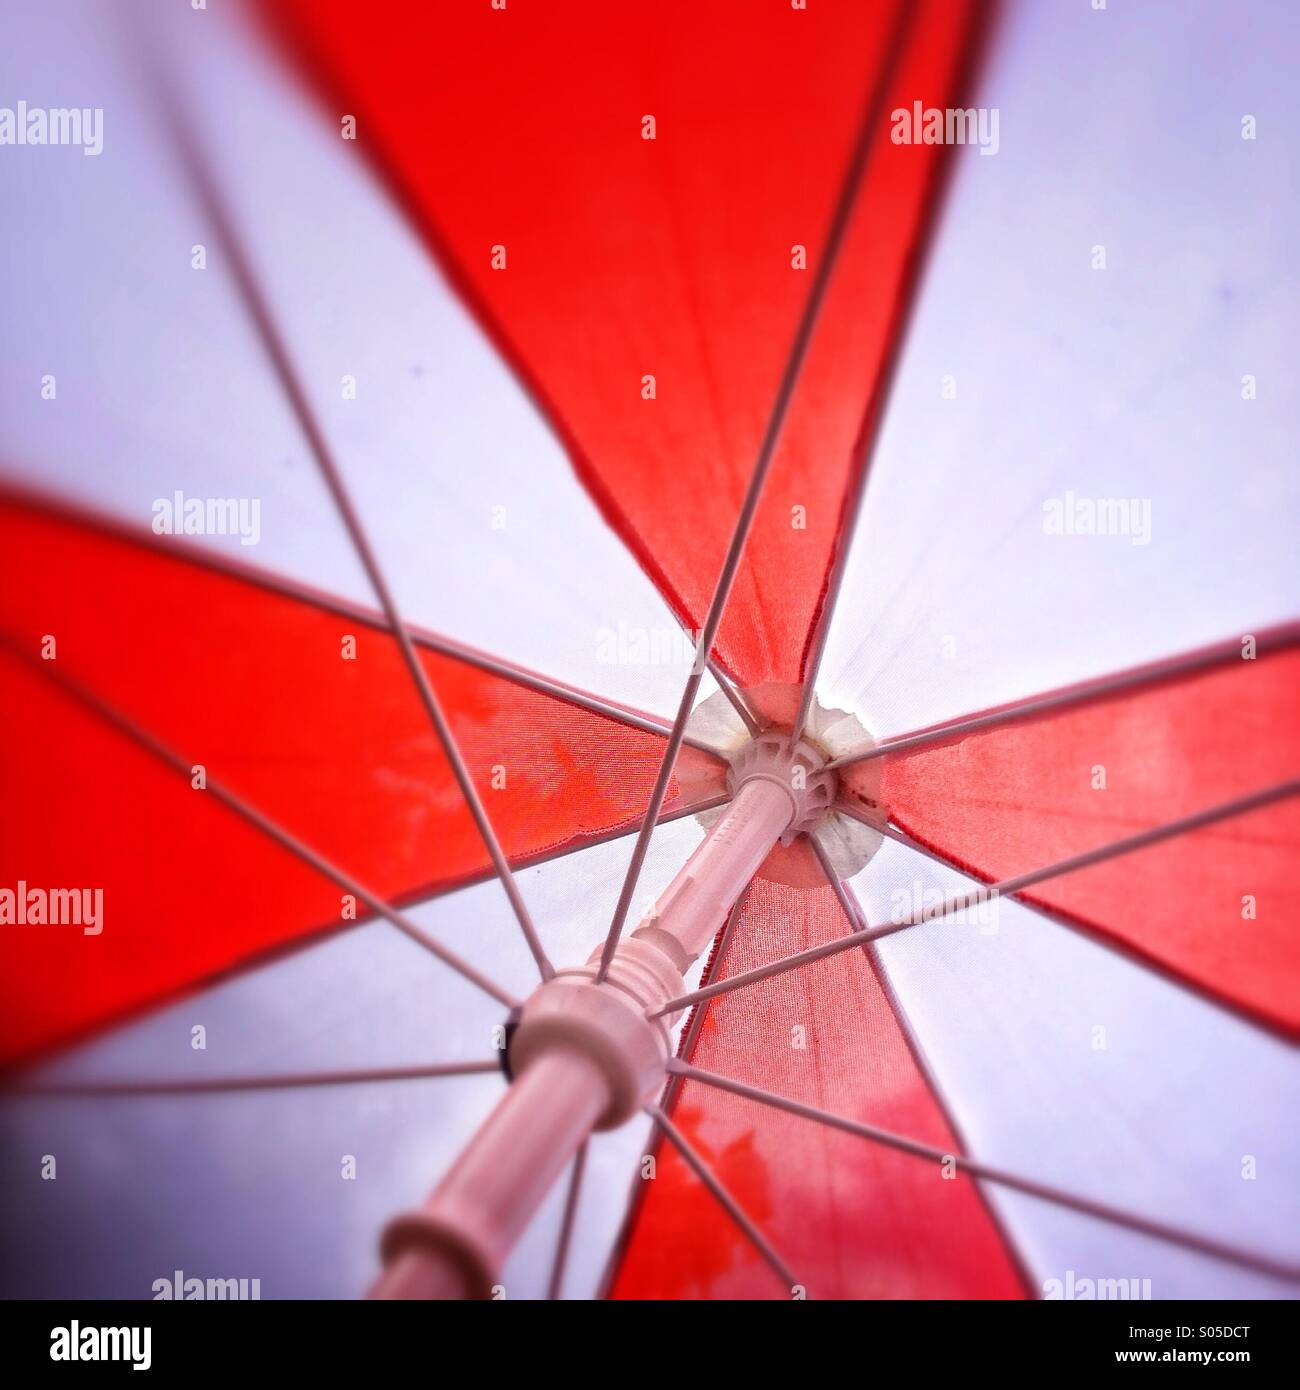 Red and white umbrella - Stock Image